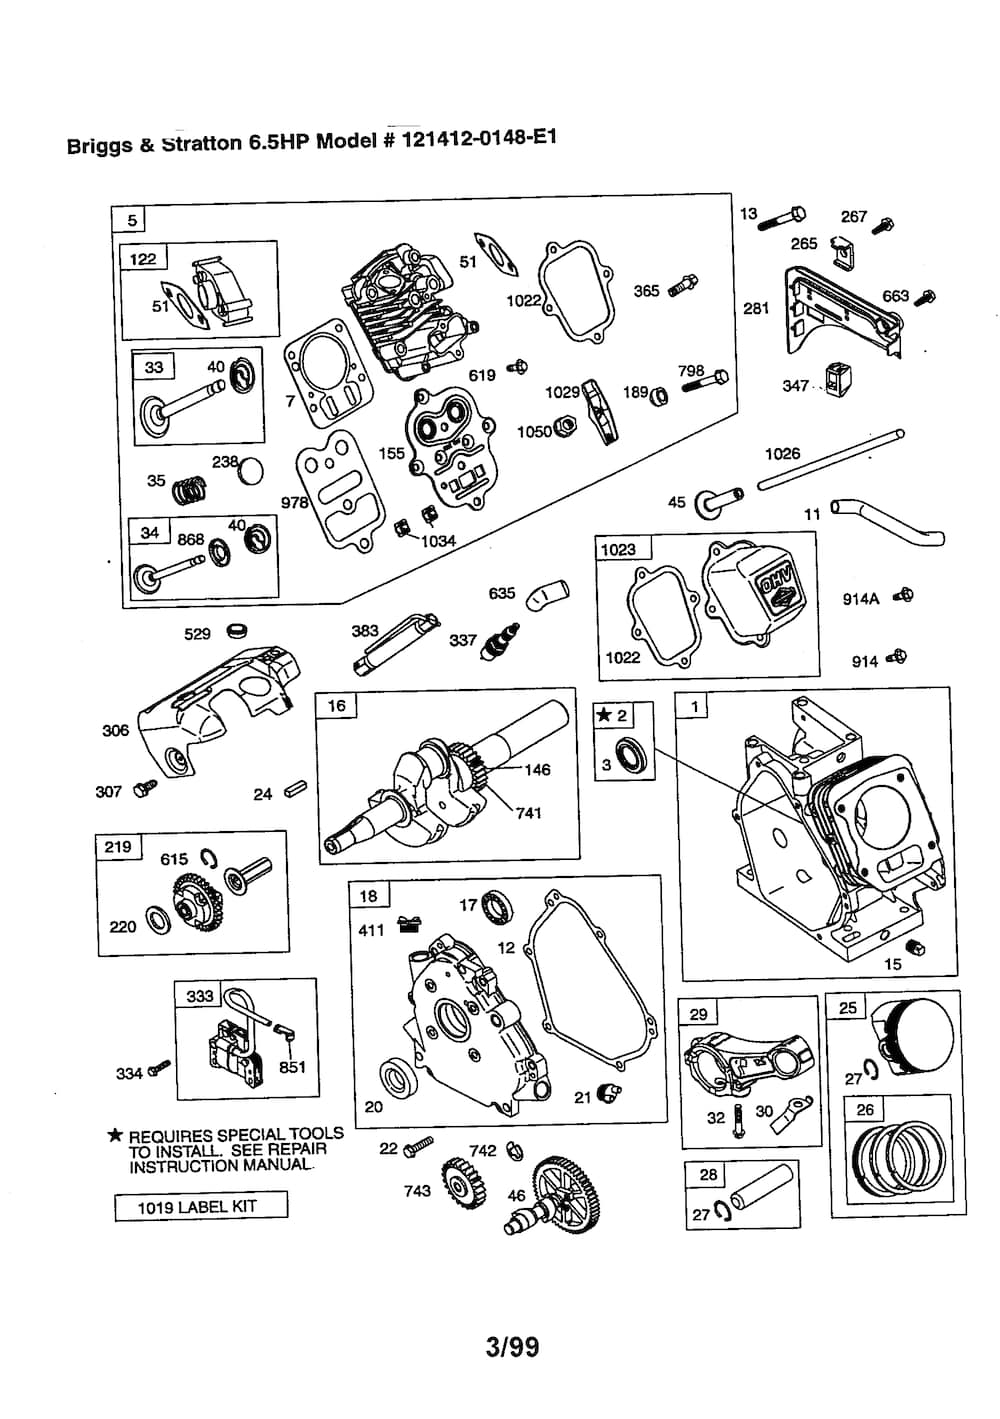 Briggs & Stratton 6.5 Hp Engine Parts | Model 1214120148E1 | Sears within Briggs & Stratton Engine Parts And Diagrams